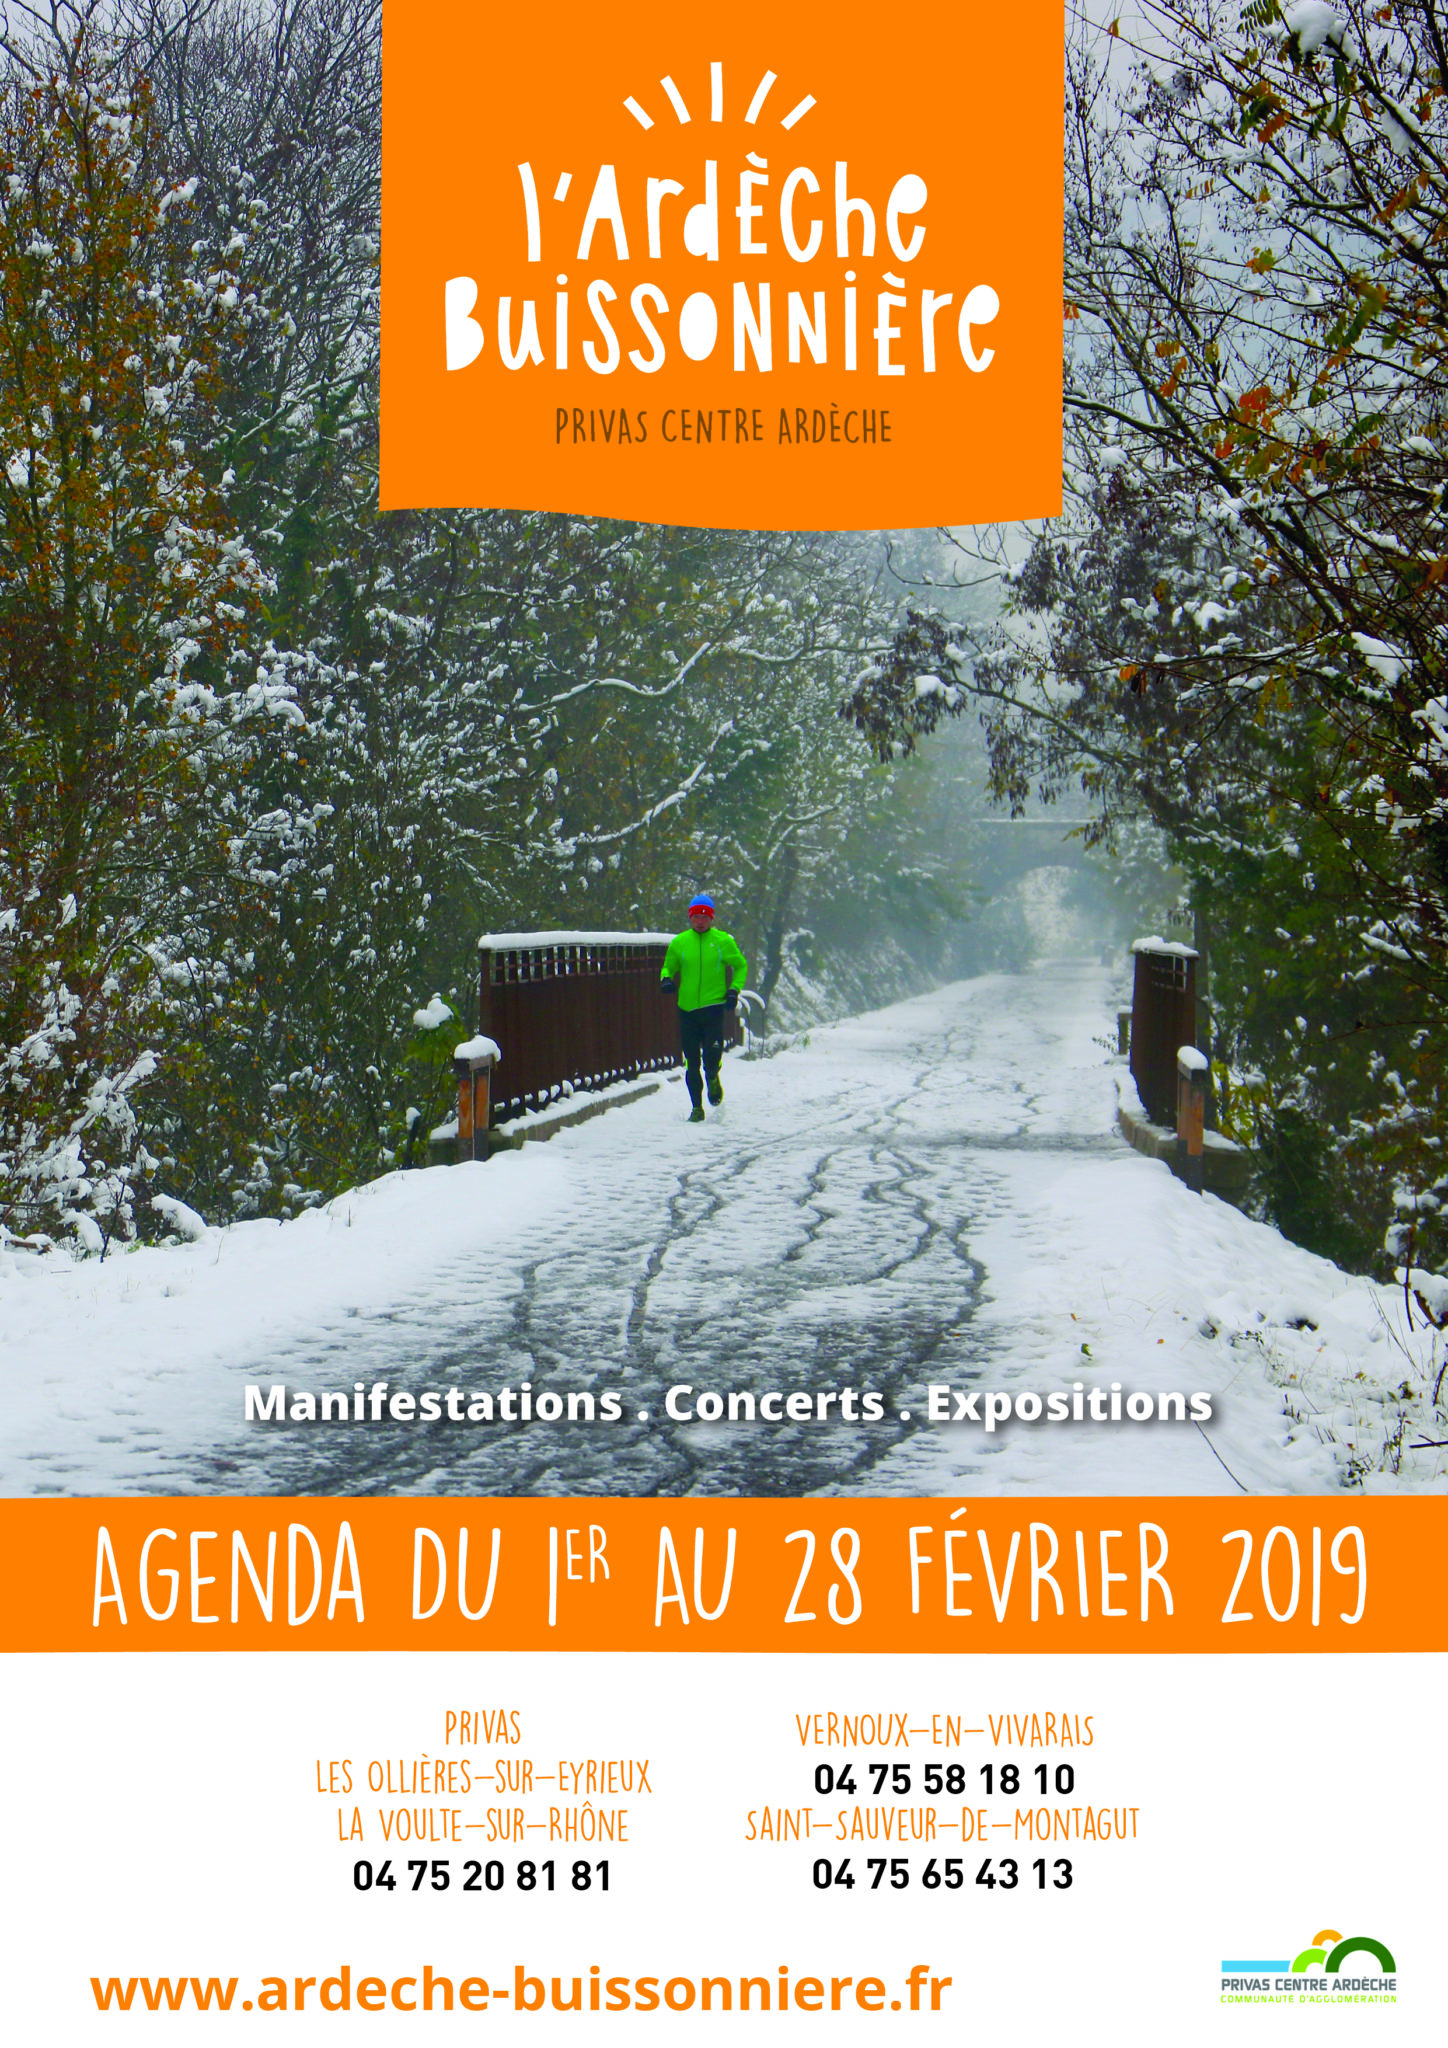 February 2019 events agenda - Ardèche Buissonnière